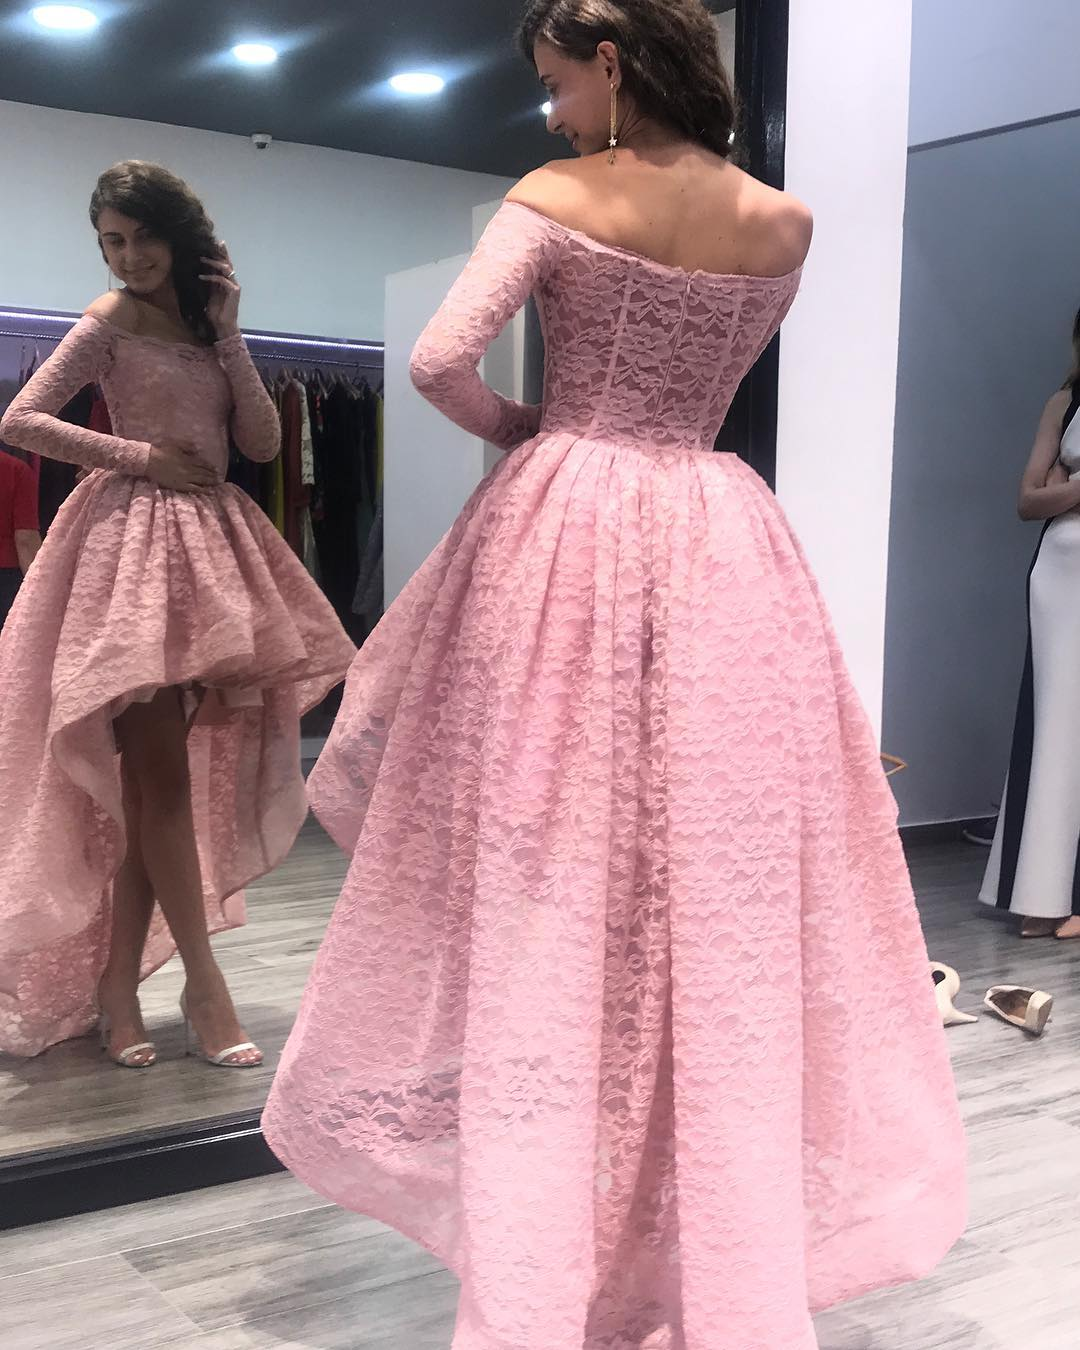 0bccc4054f41 ... Siaoryne LP 001 Off Shoulder Black Pink Lace High Low Prom Homecoming  Dresses Long Sleeves ...